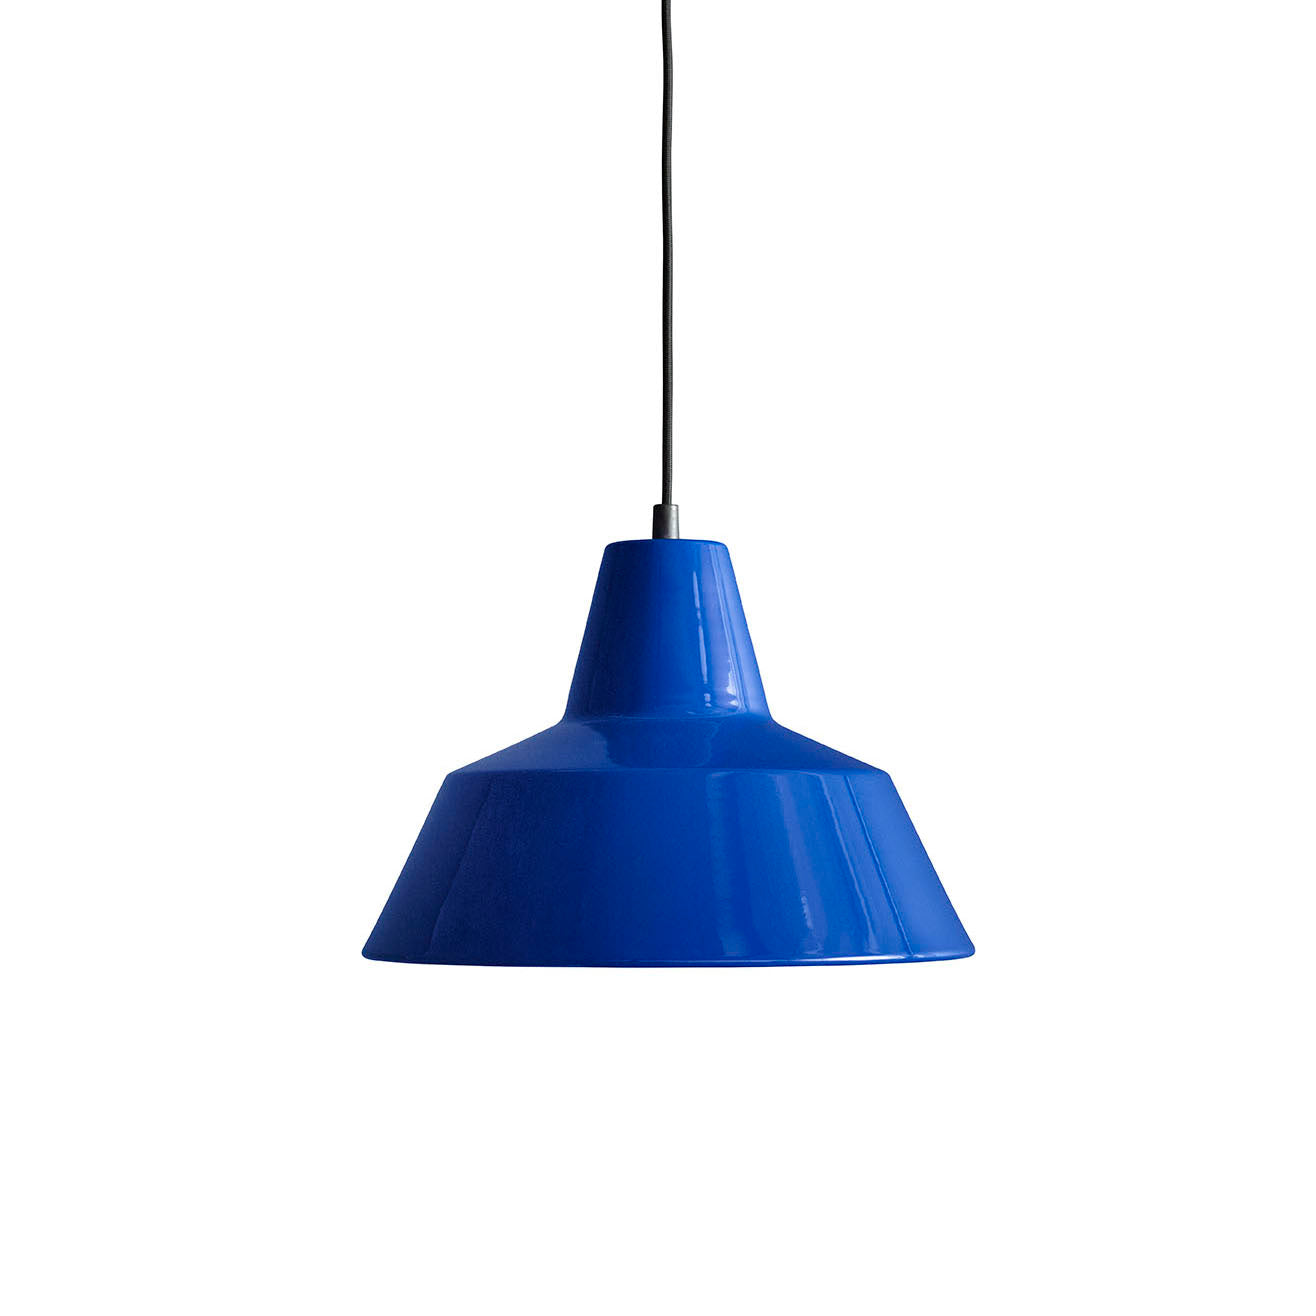 Workshop Pendant Lamp W3: Blue